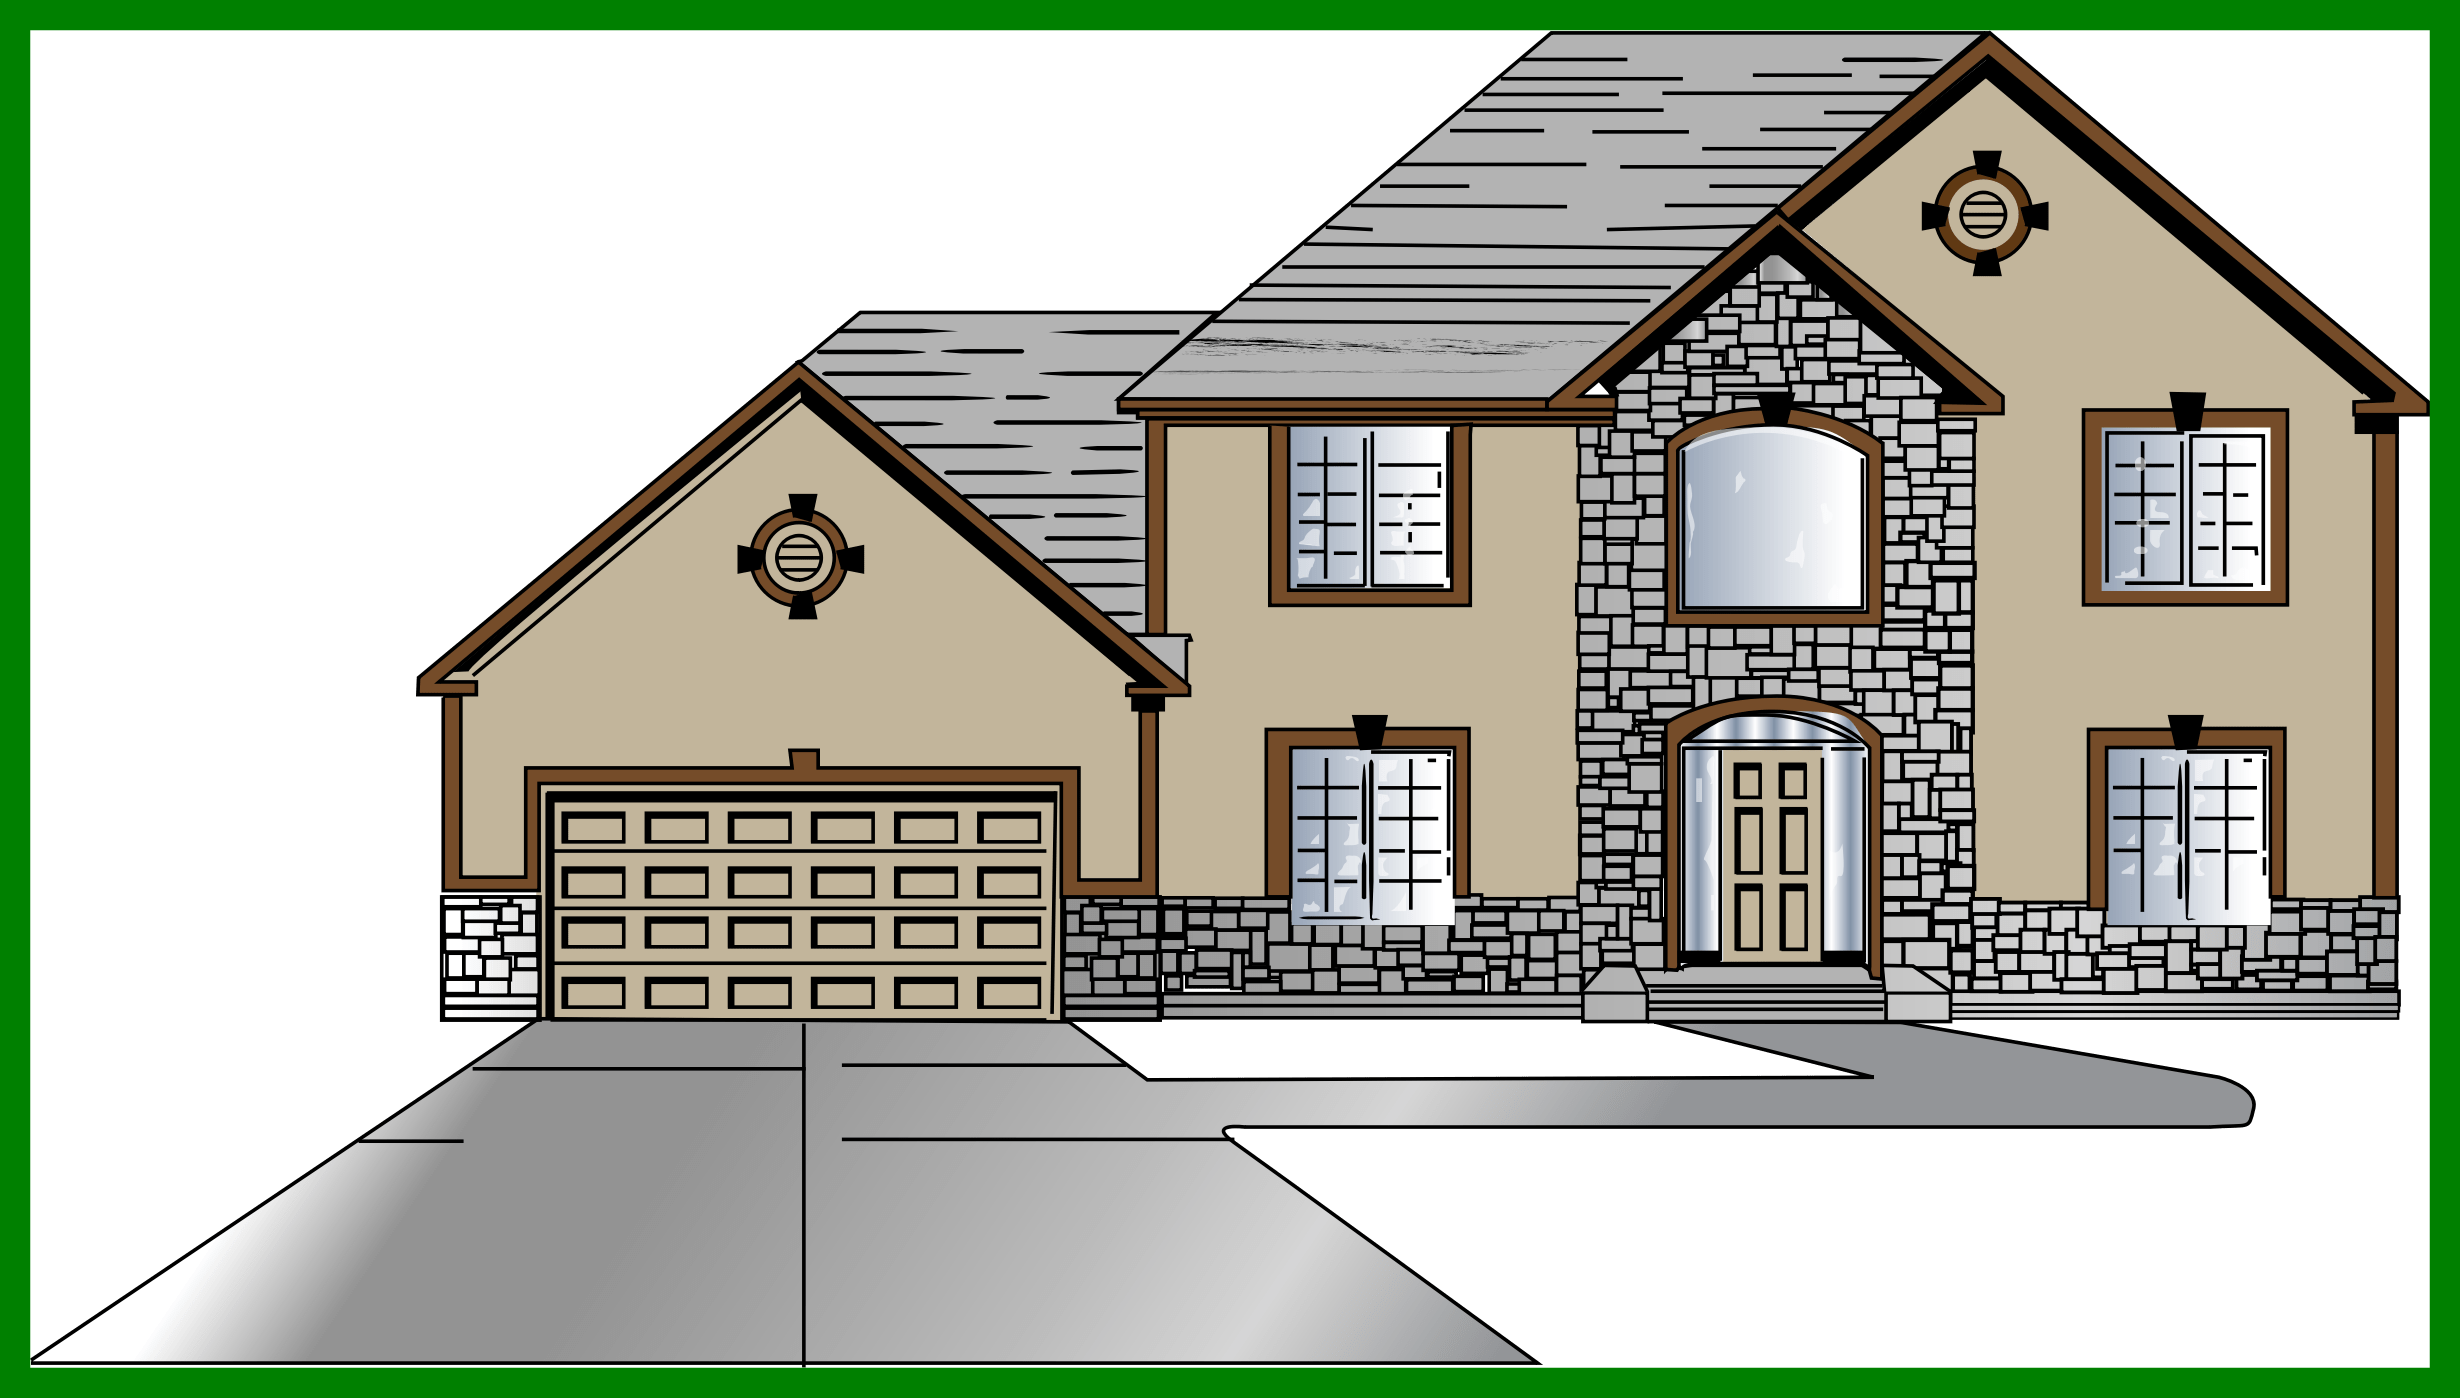 Best blue country house. Home clipart yard